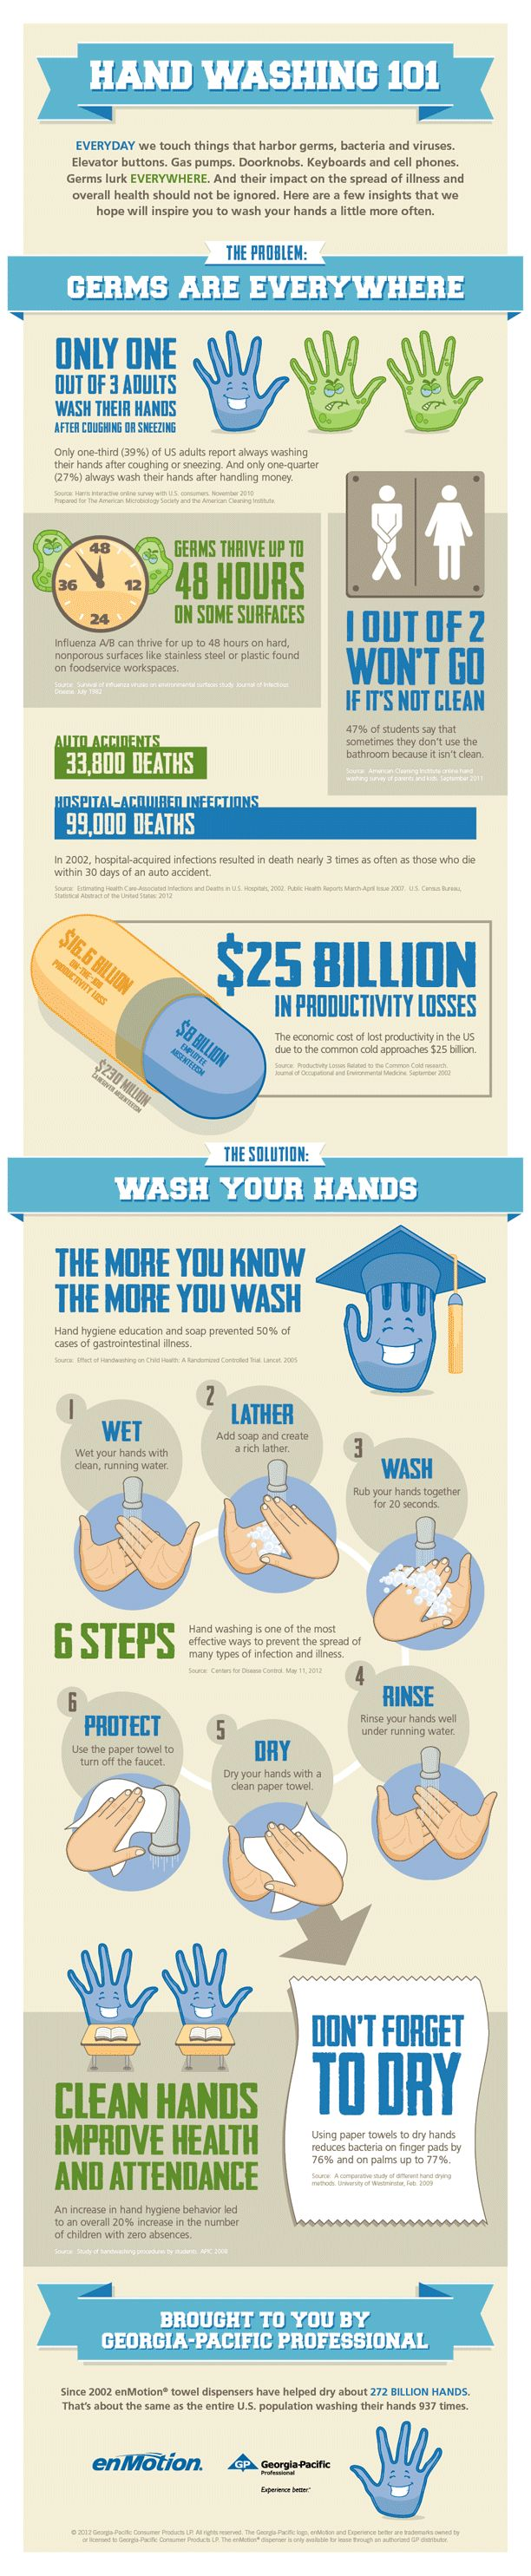 Infographic: Wash your Hands for Sick Season BiteSizeWellness.com